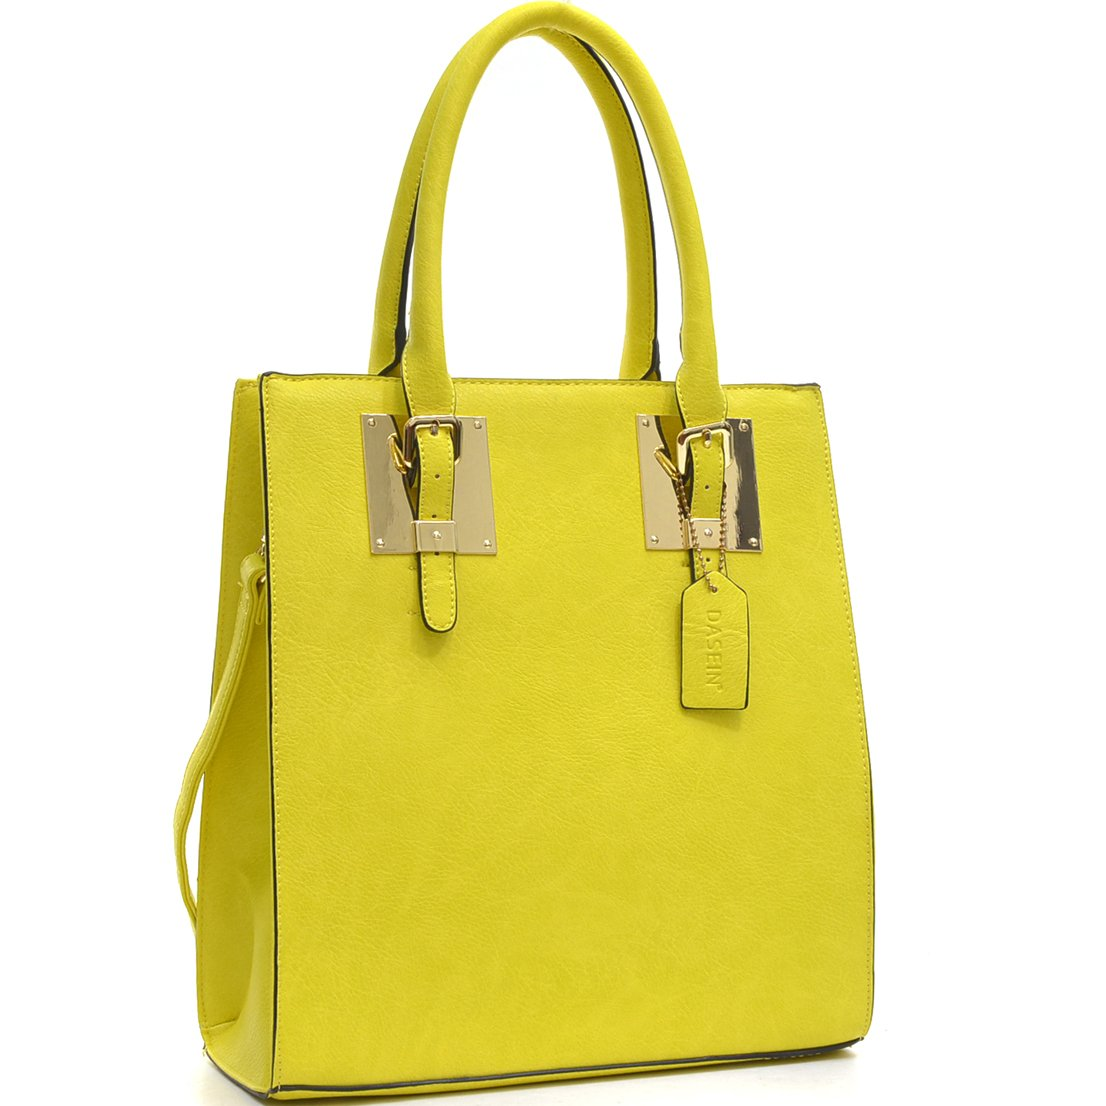 Dasein Structured Faux Leather Tote Satchel Bag with Gold-Tone Accent - Yellow